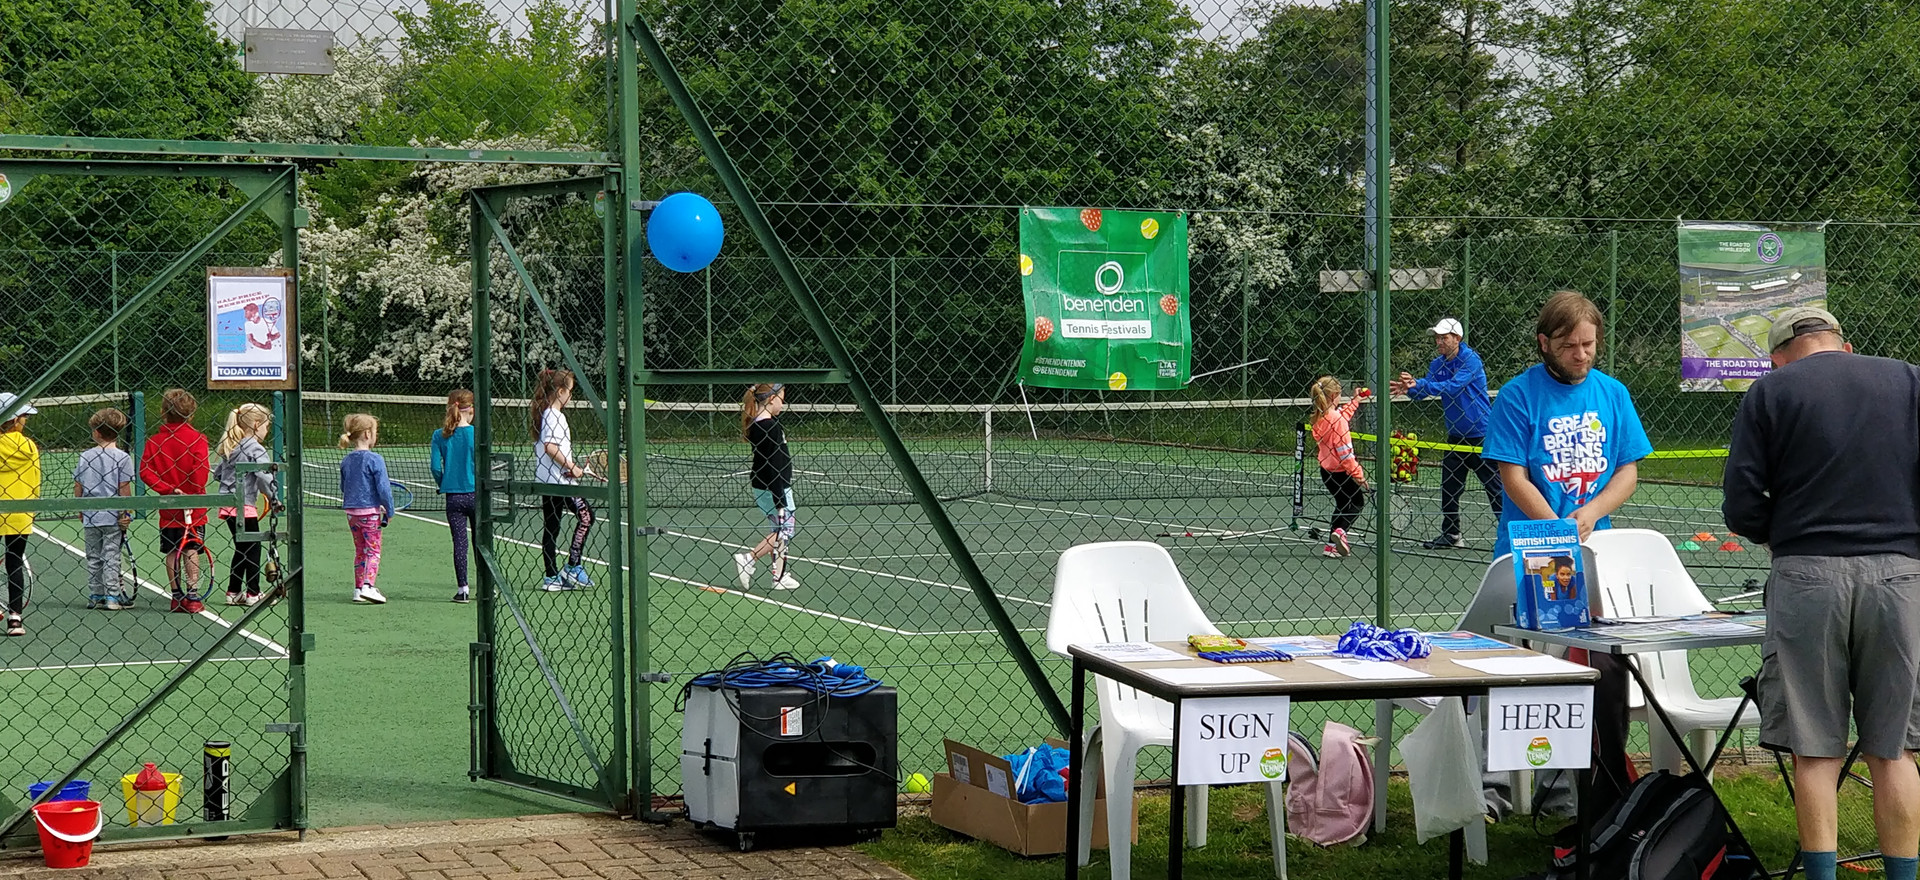 Tennis taster at our popular open day in 2018